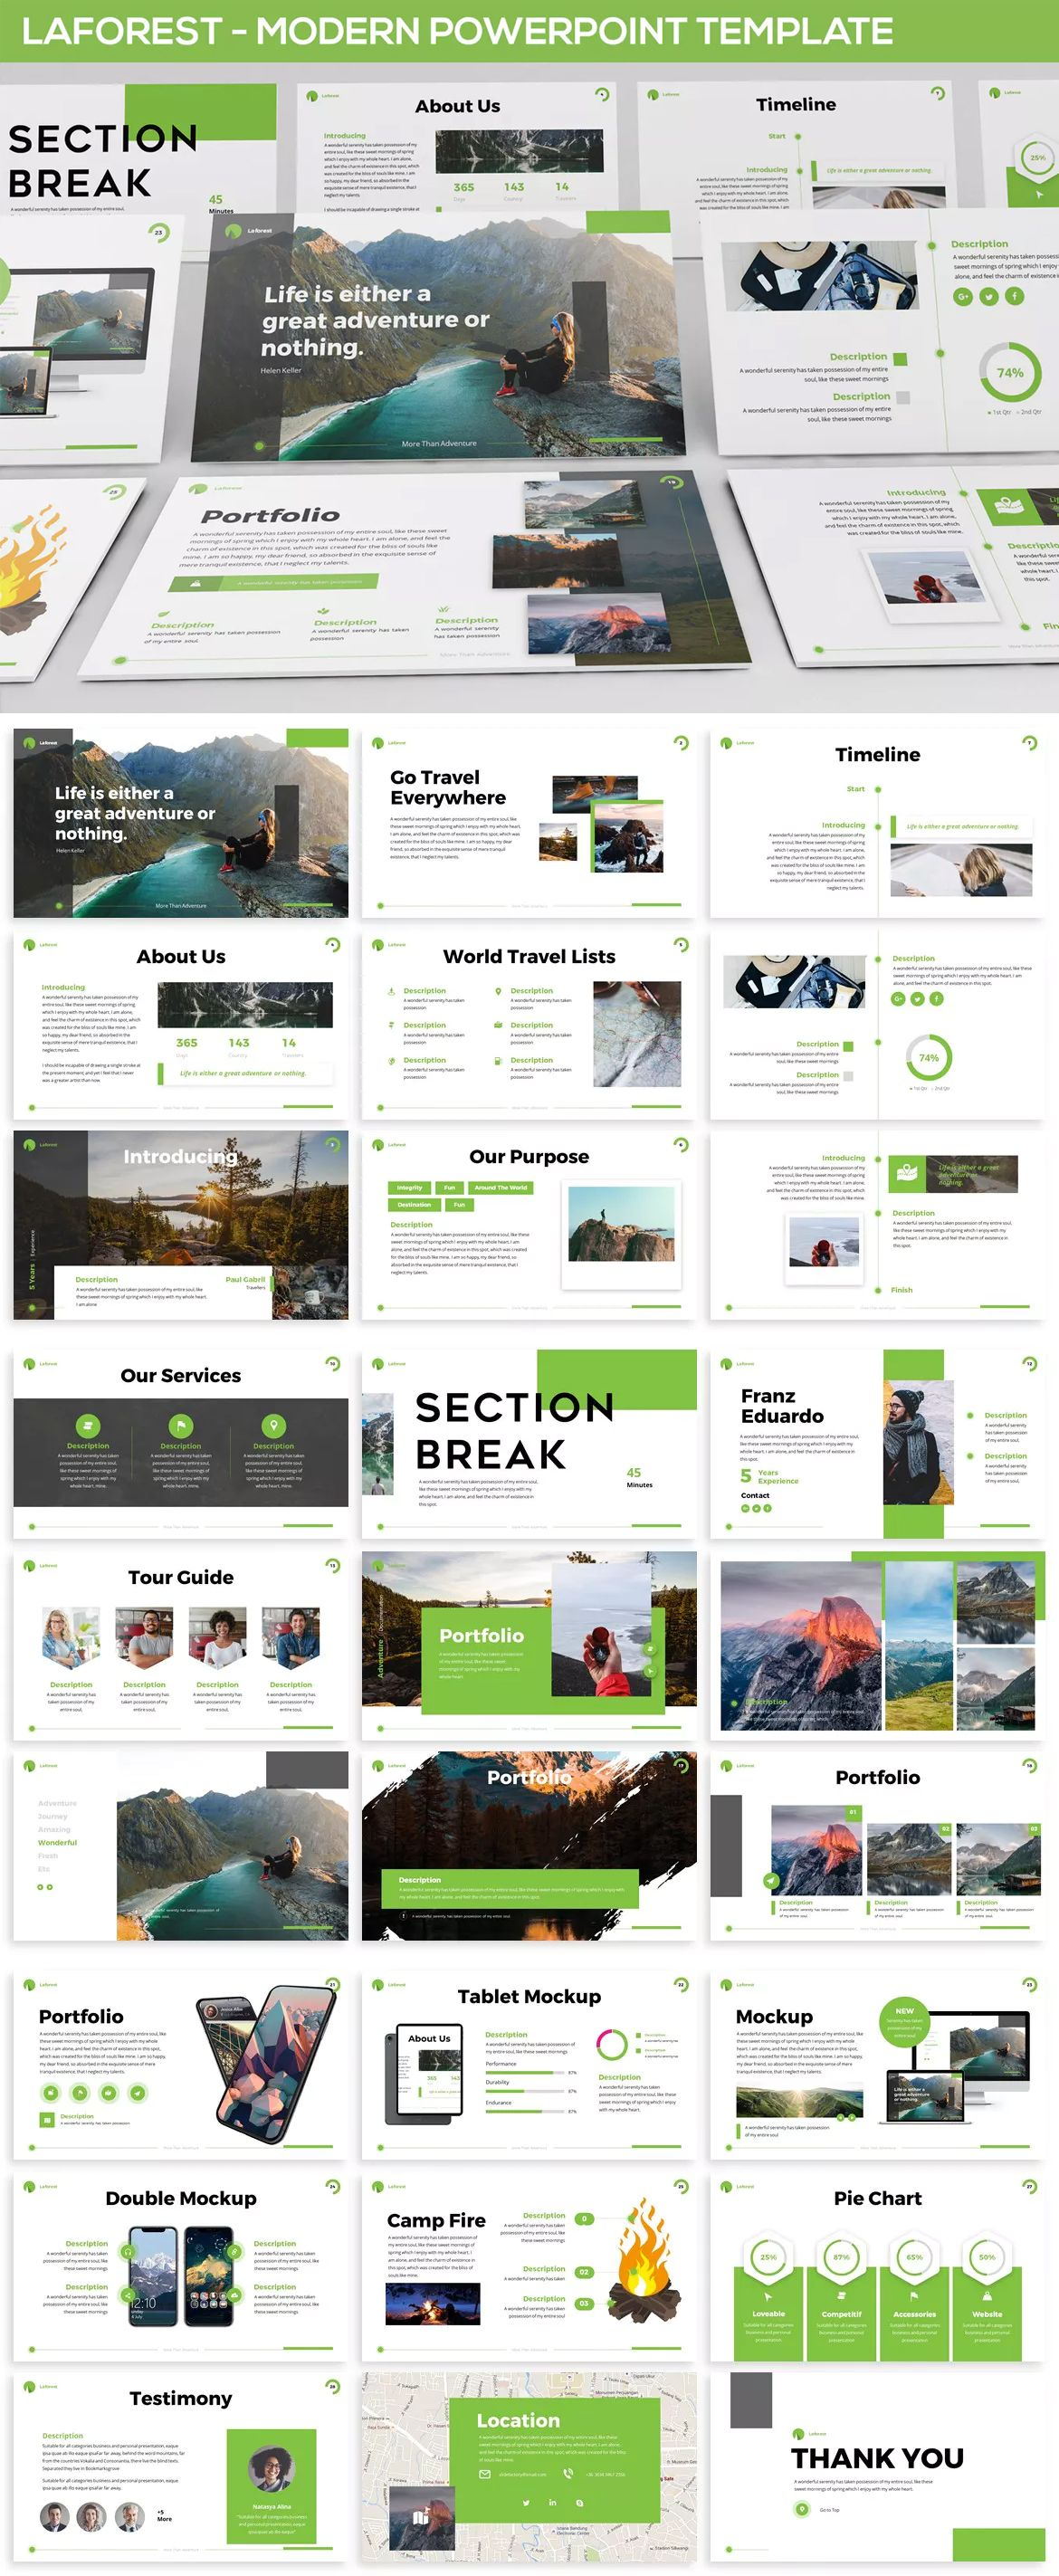 Laforest - Modern Powerpoint Presentation Template - 30